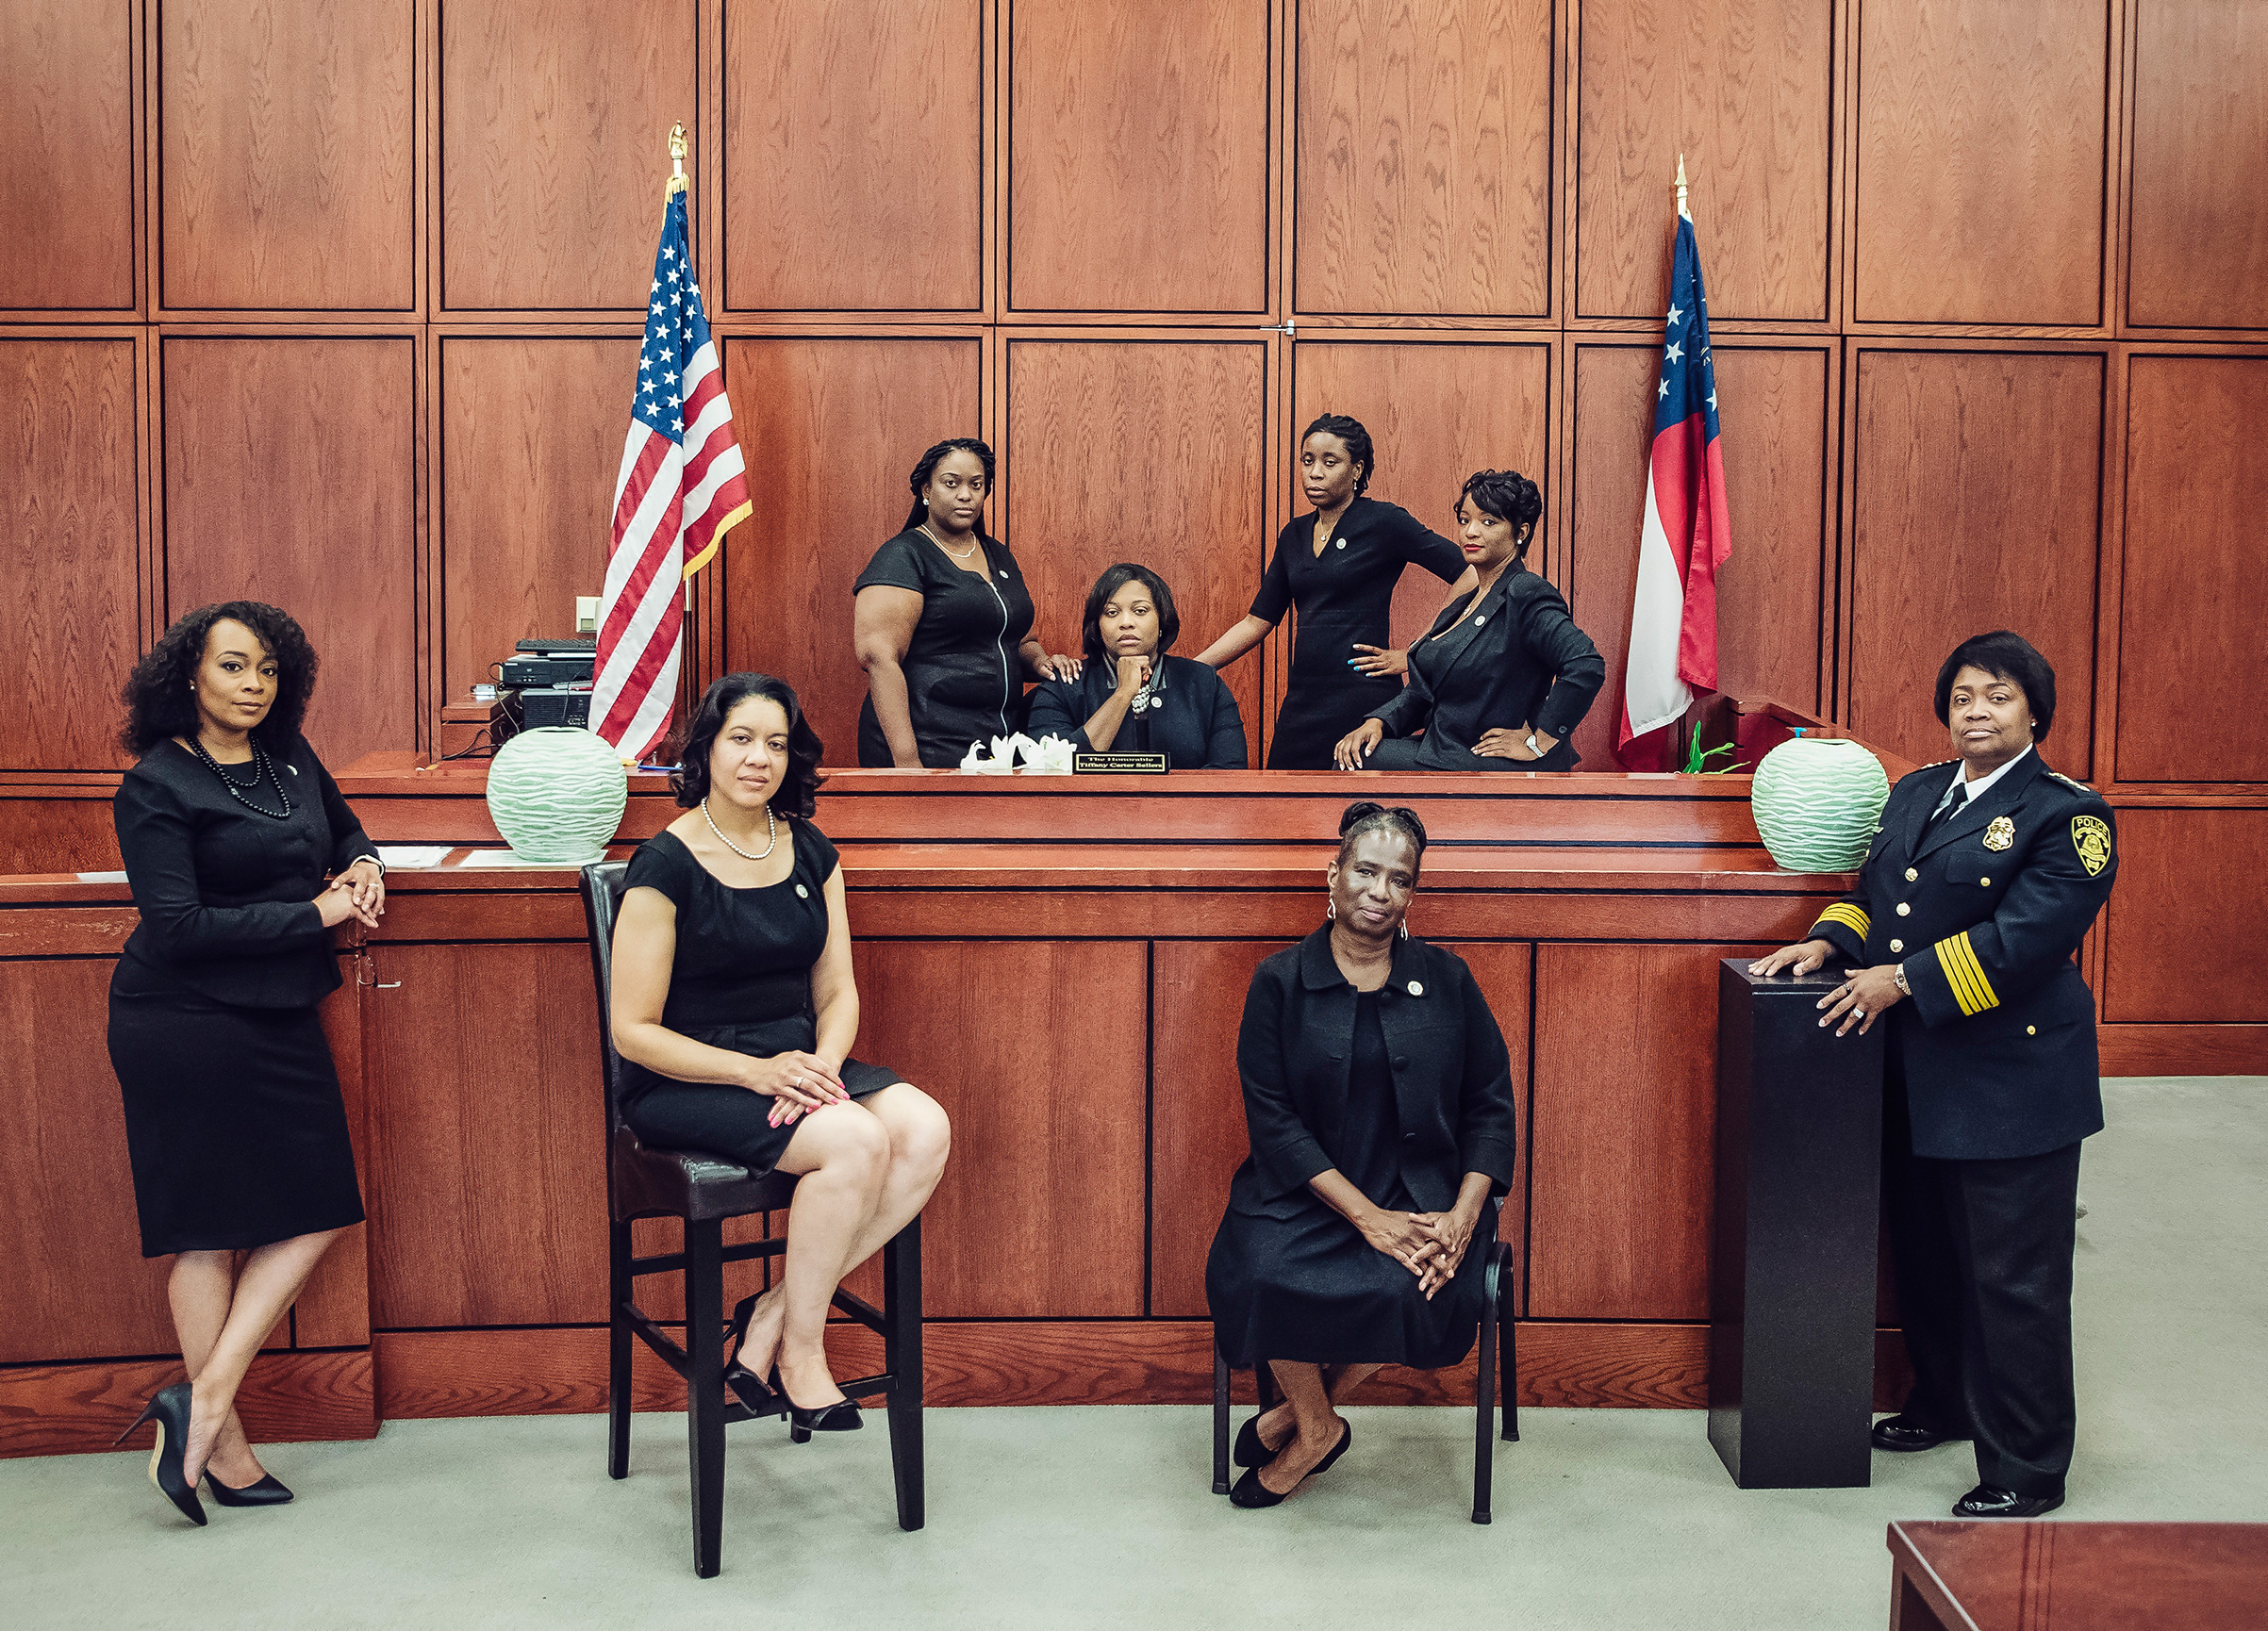 This photo of one city's justice-system leaders appeared in the Atlanta Voice and then went viral